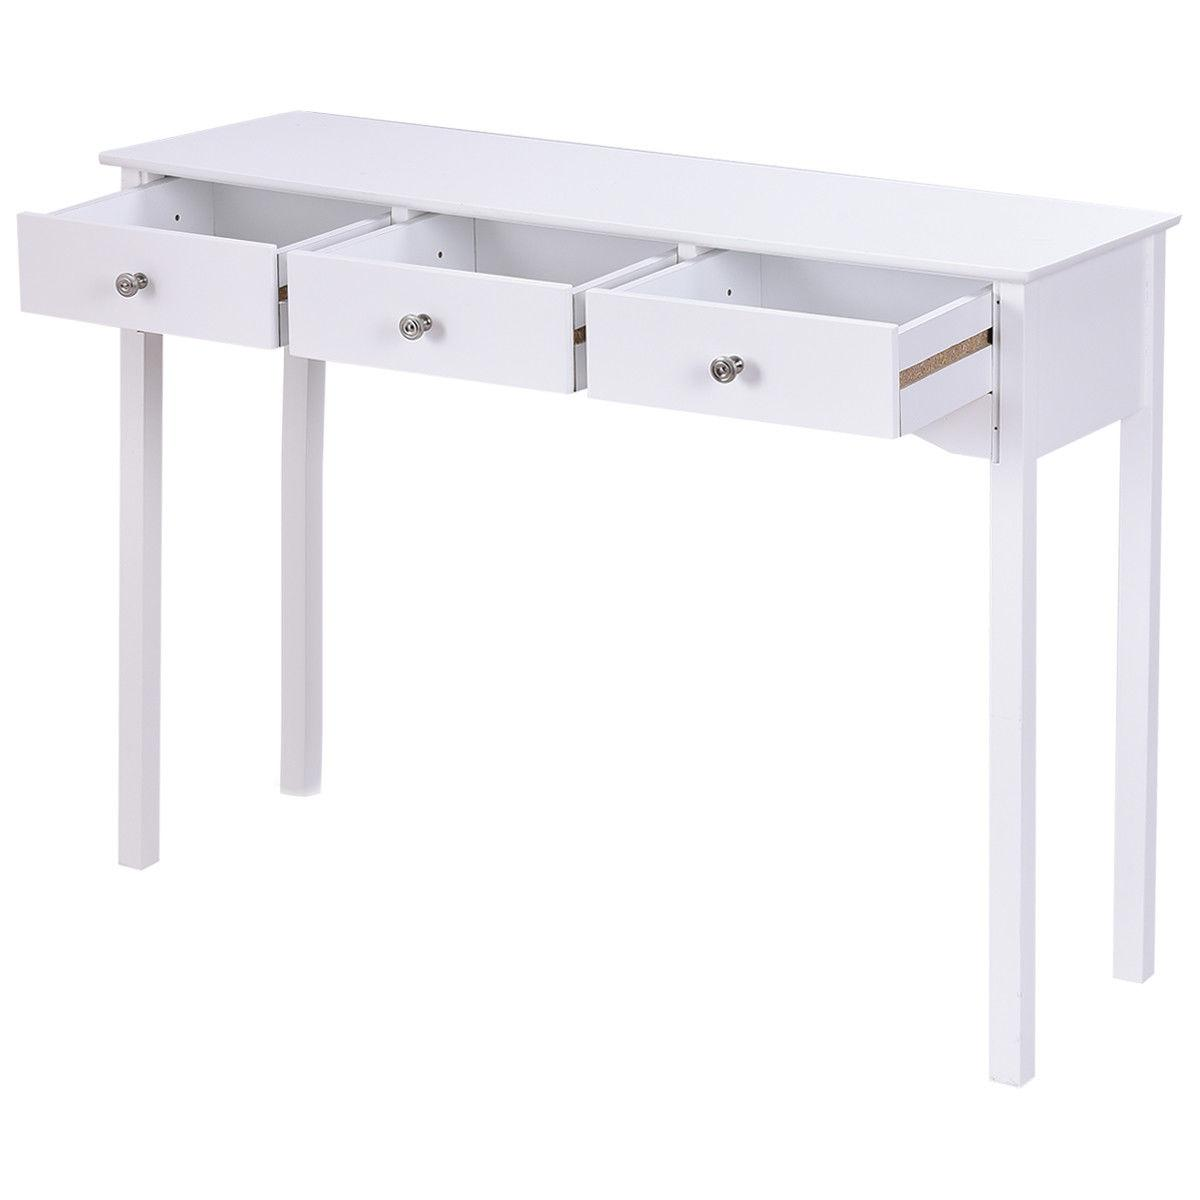 Console Table Hall Side 3 Entryway Desk Table White